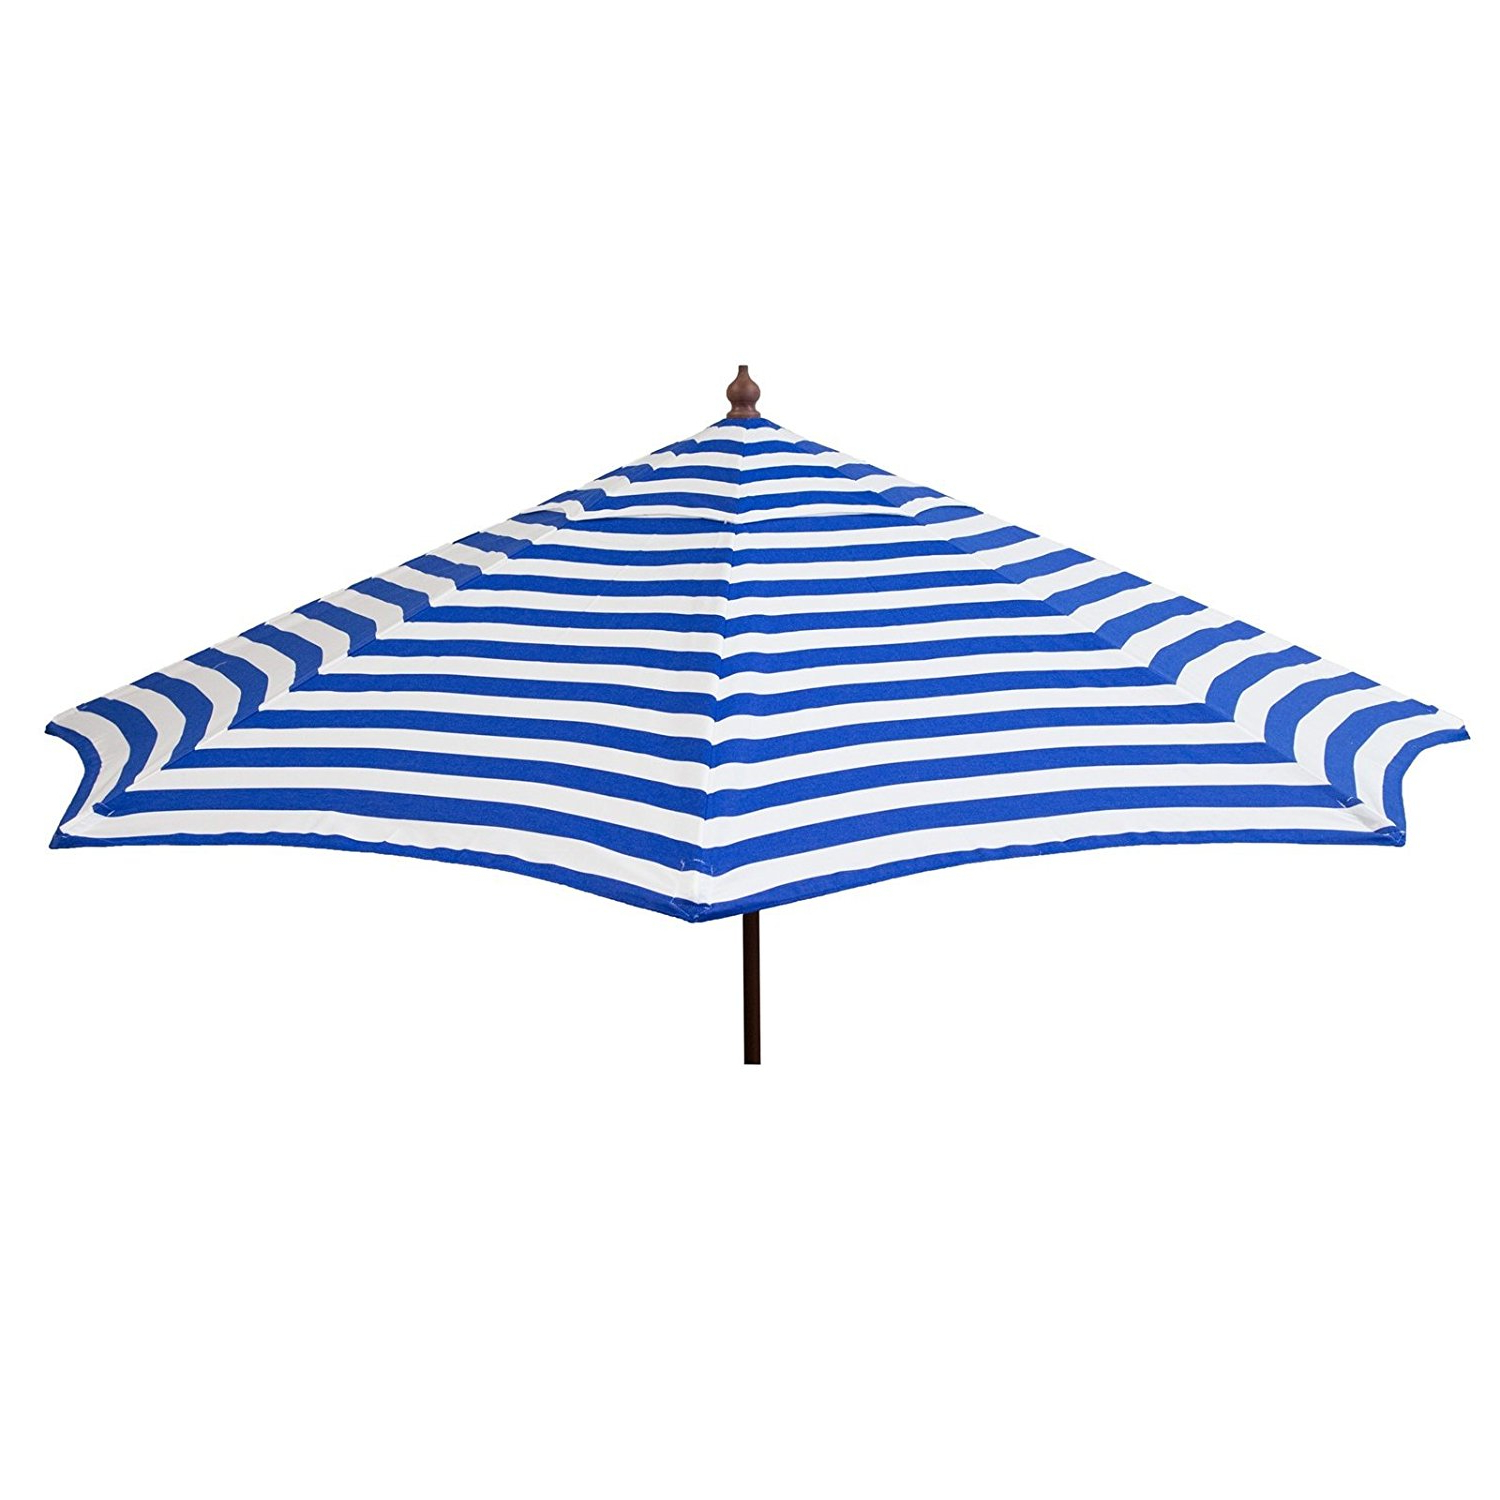 Buy 9Ft Tilt Italian Market Umbrella Home Patio Canopy Sun Shelter Throughout Well Known Italian Market Umbrellas (View 4 of 20)